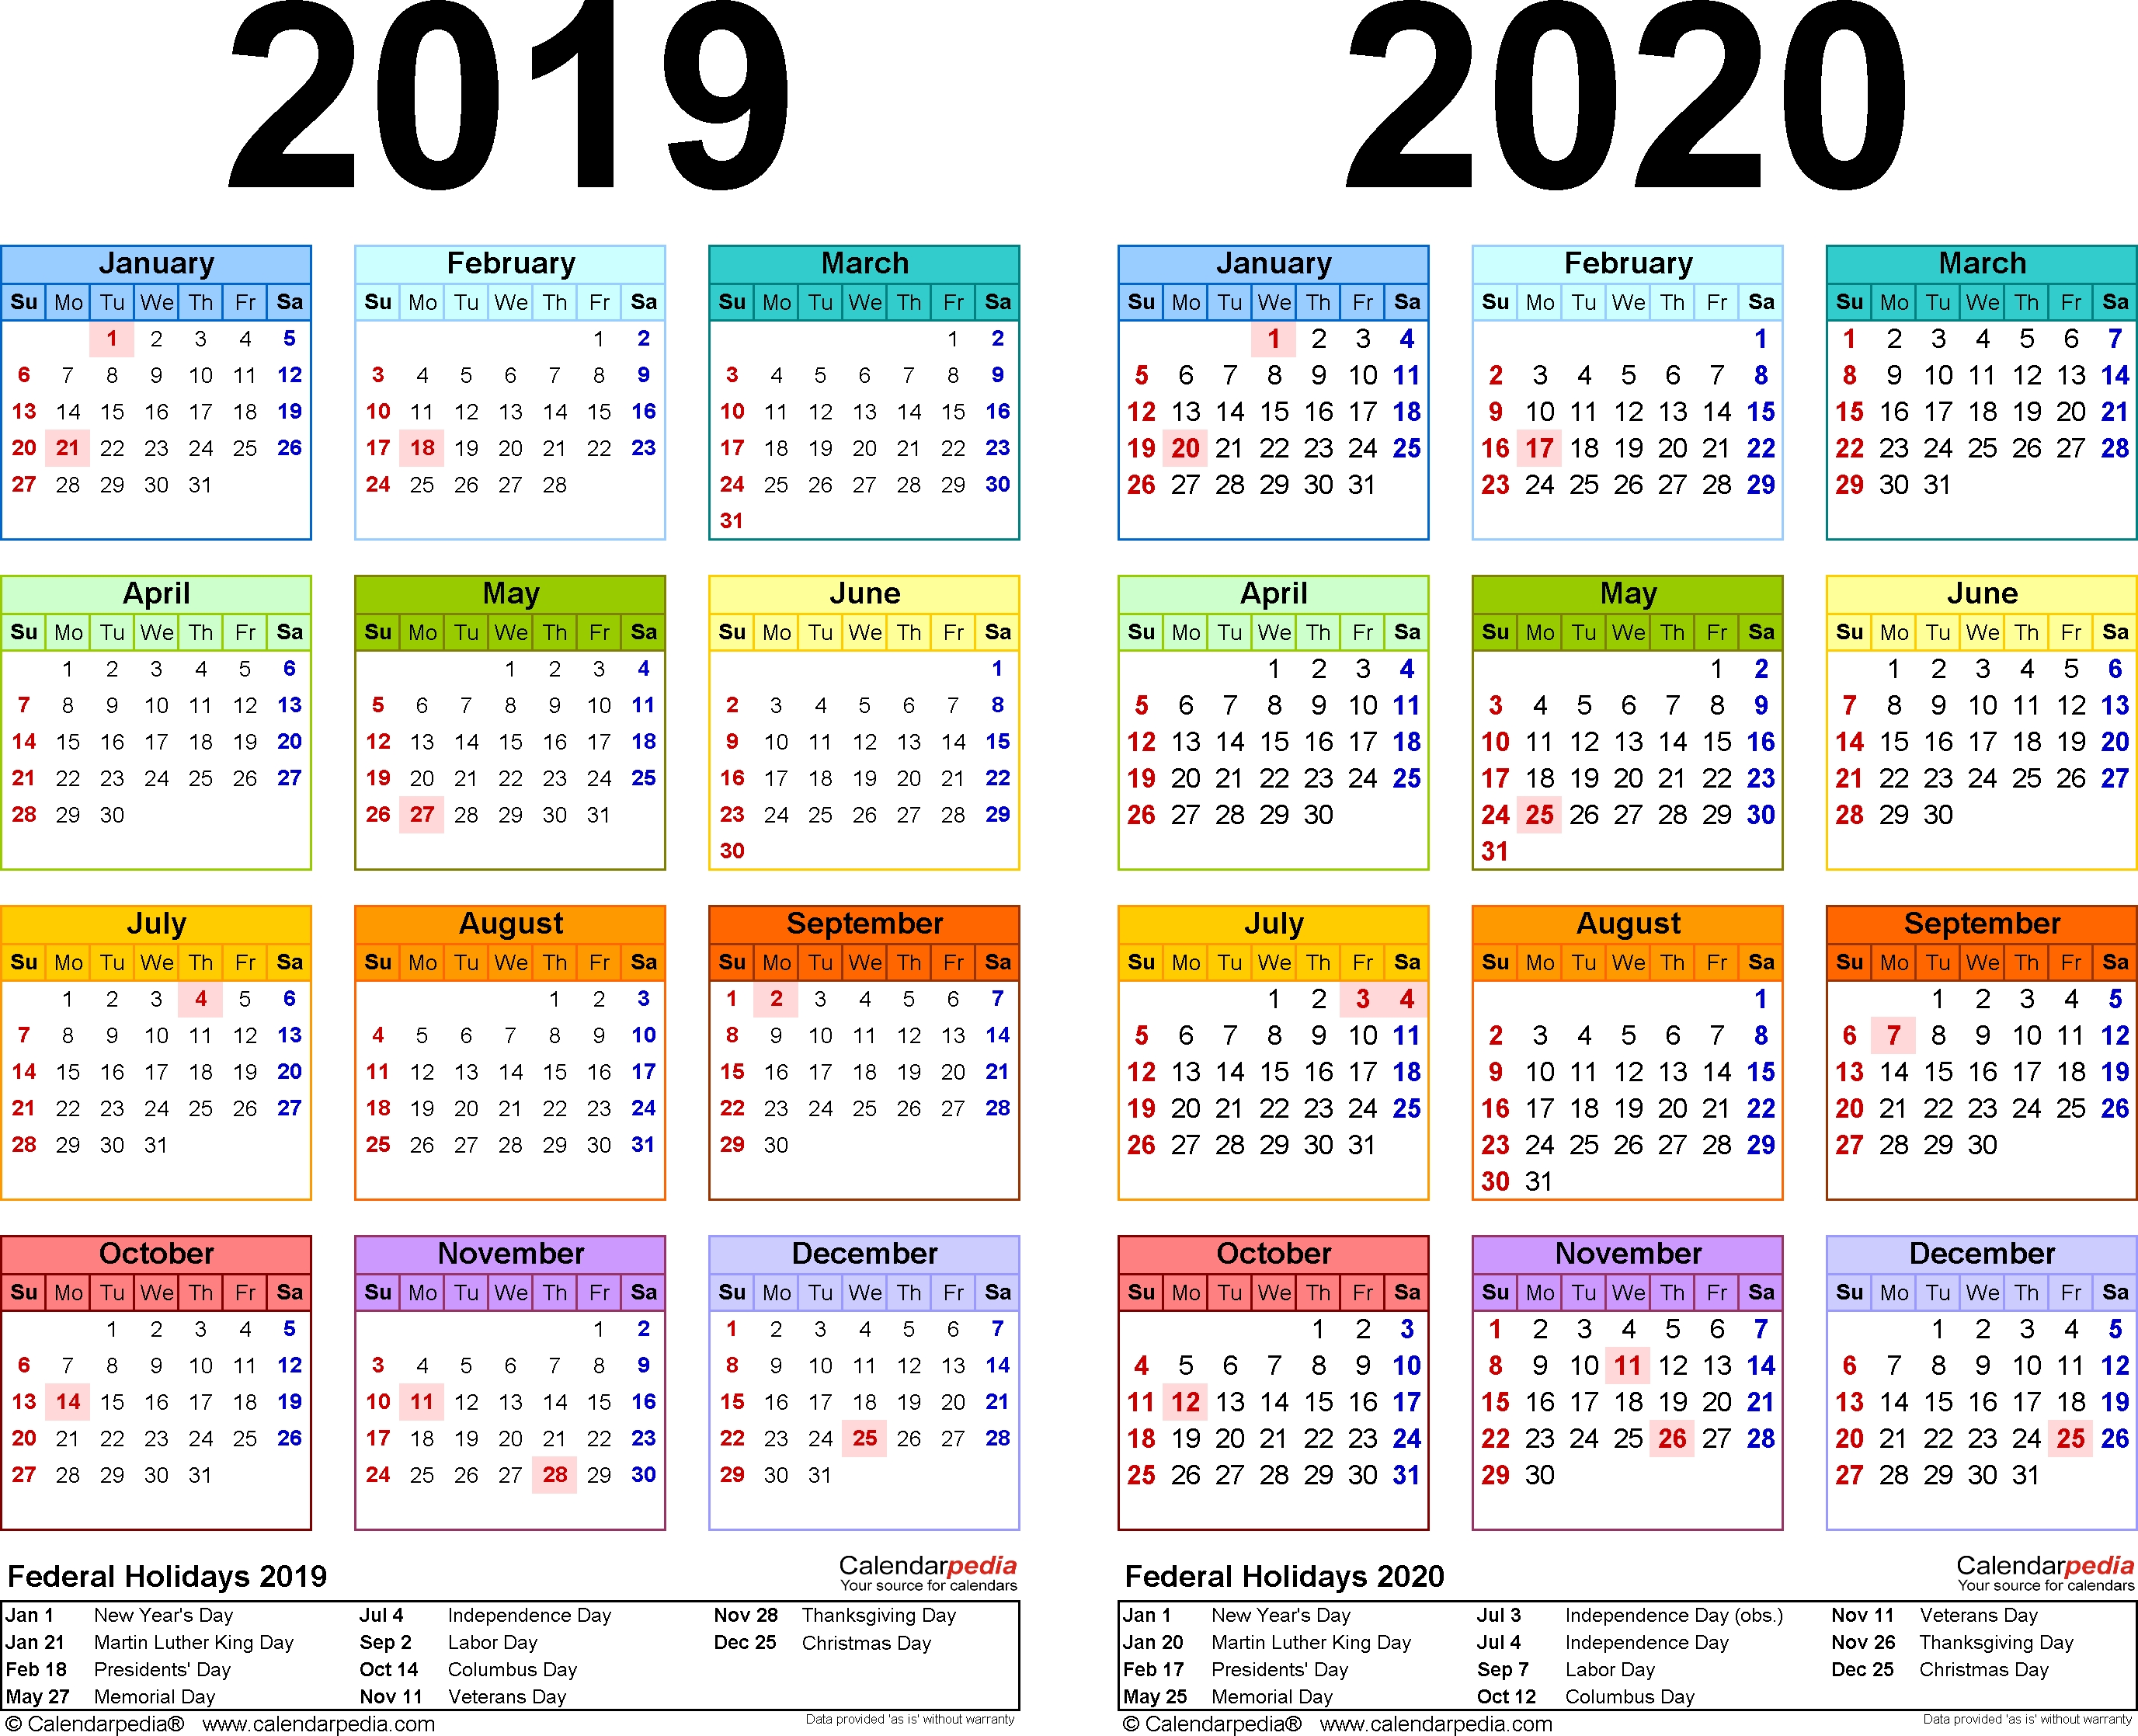 2019-2020 Calendar - Free Printable Two-Year Word Calendars in One Page 2019-2020 Calendar